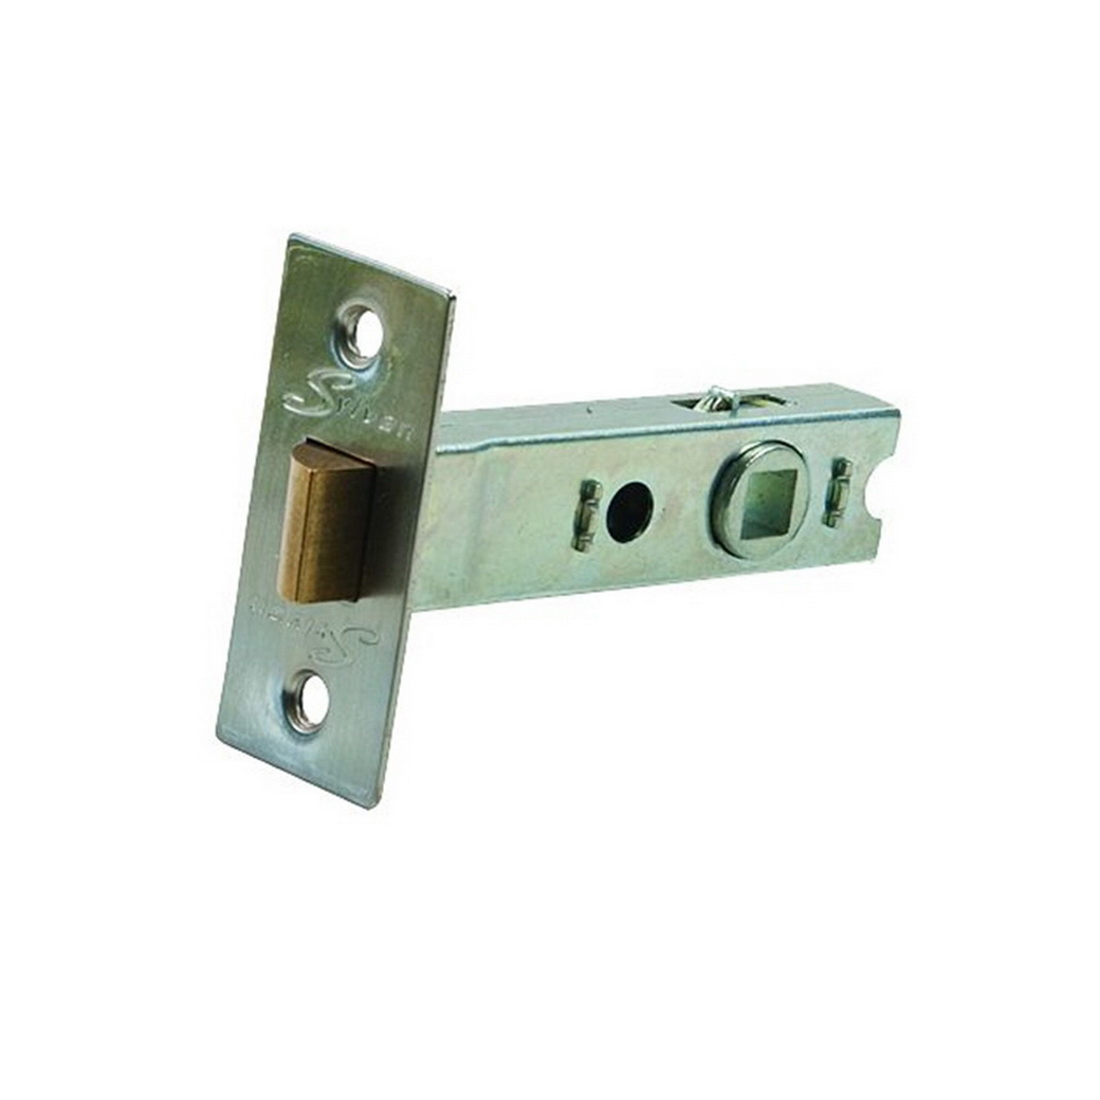 Tubular Mortice Latch 70mm 7.6 x 7.6mm Spindle Satin Nickel Plate MLS70.SNP